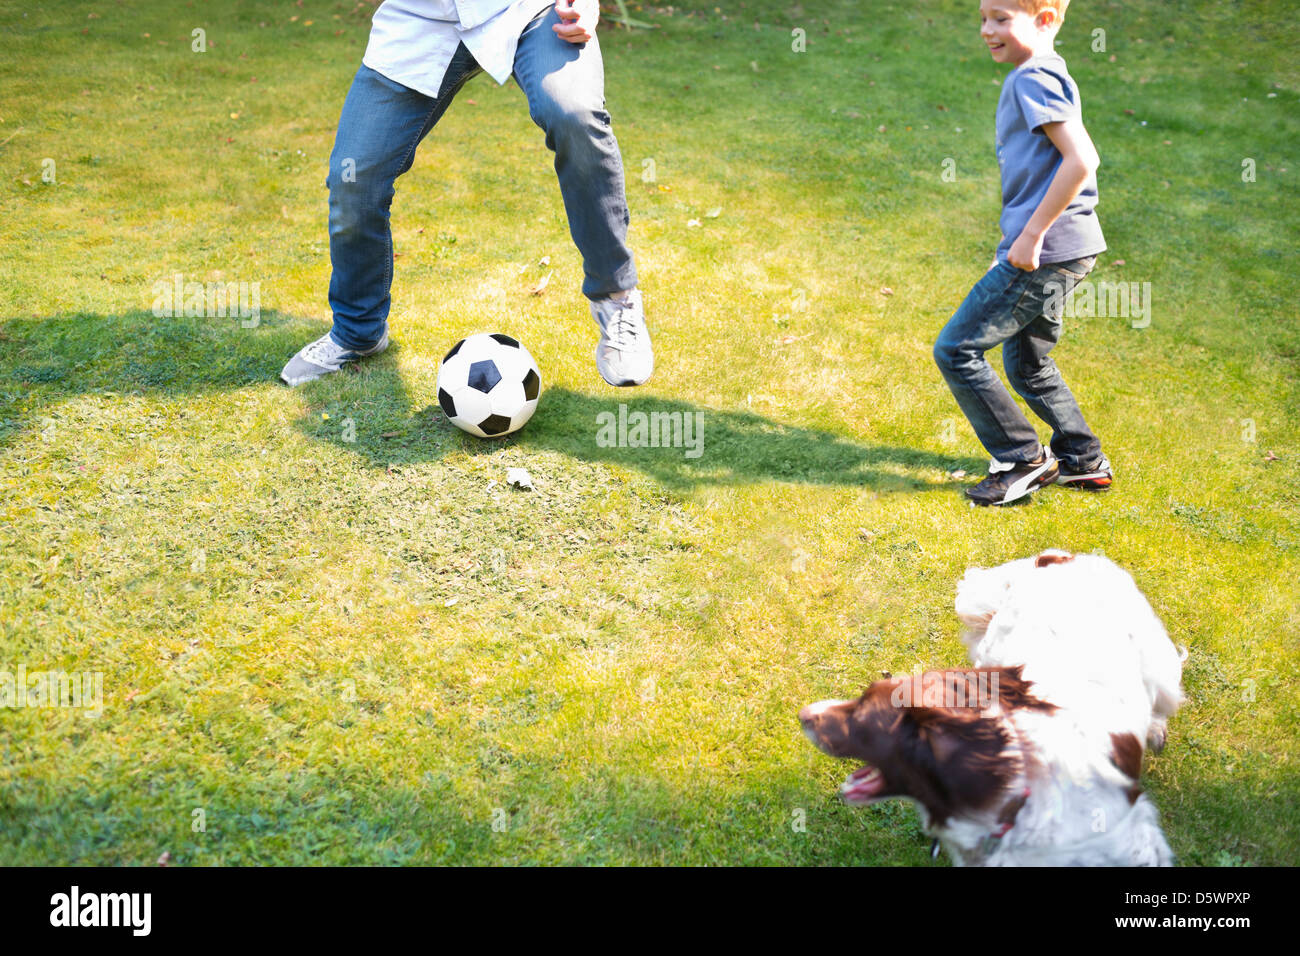 Boy playing soccer with dog outdoors - Stock Image